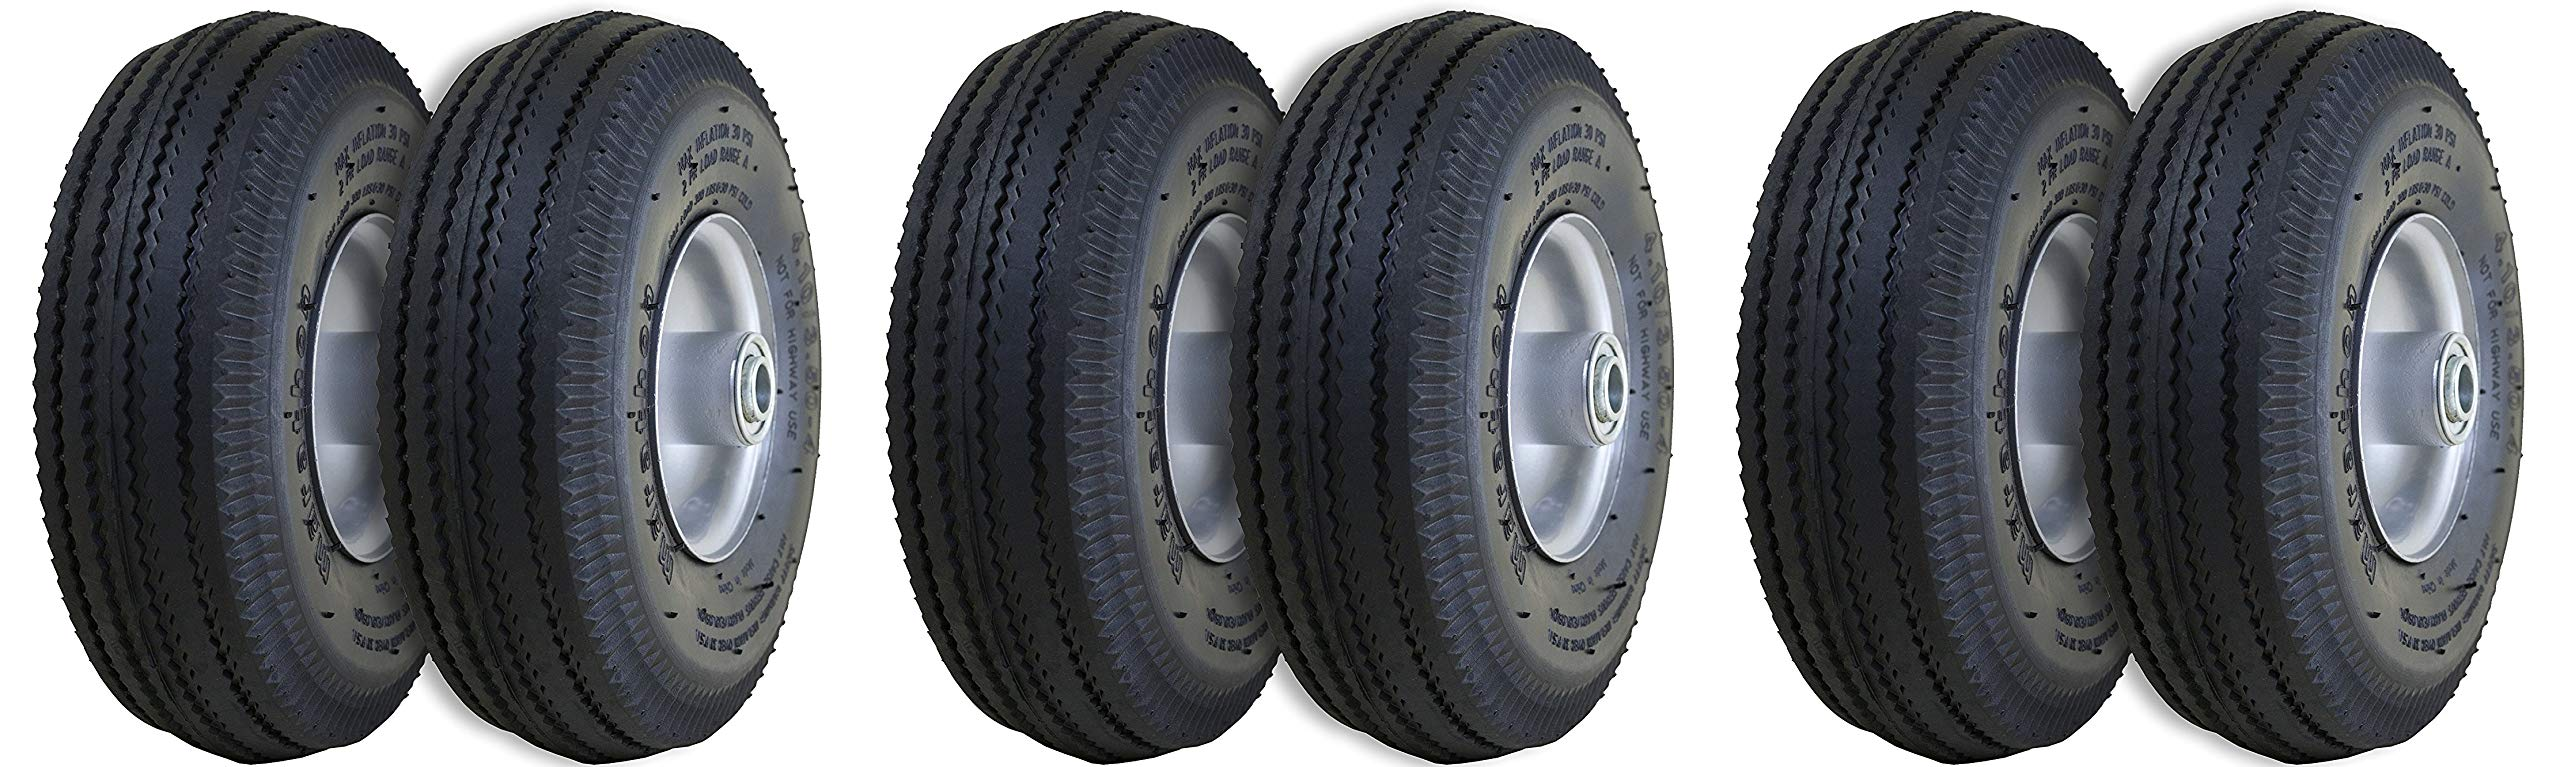 Marathon 4.10/3.50-4'' Pneumatic (Air Filled) Hand Truck/All Purpose Utility Tires on Wheels, 2.25'' Offset Hub, 5/8'' Bearings (3 X Pack of 2)